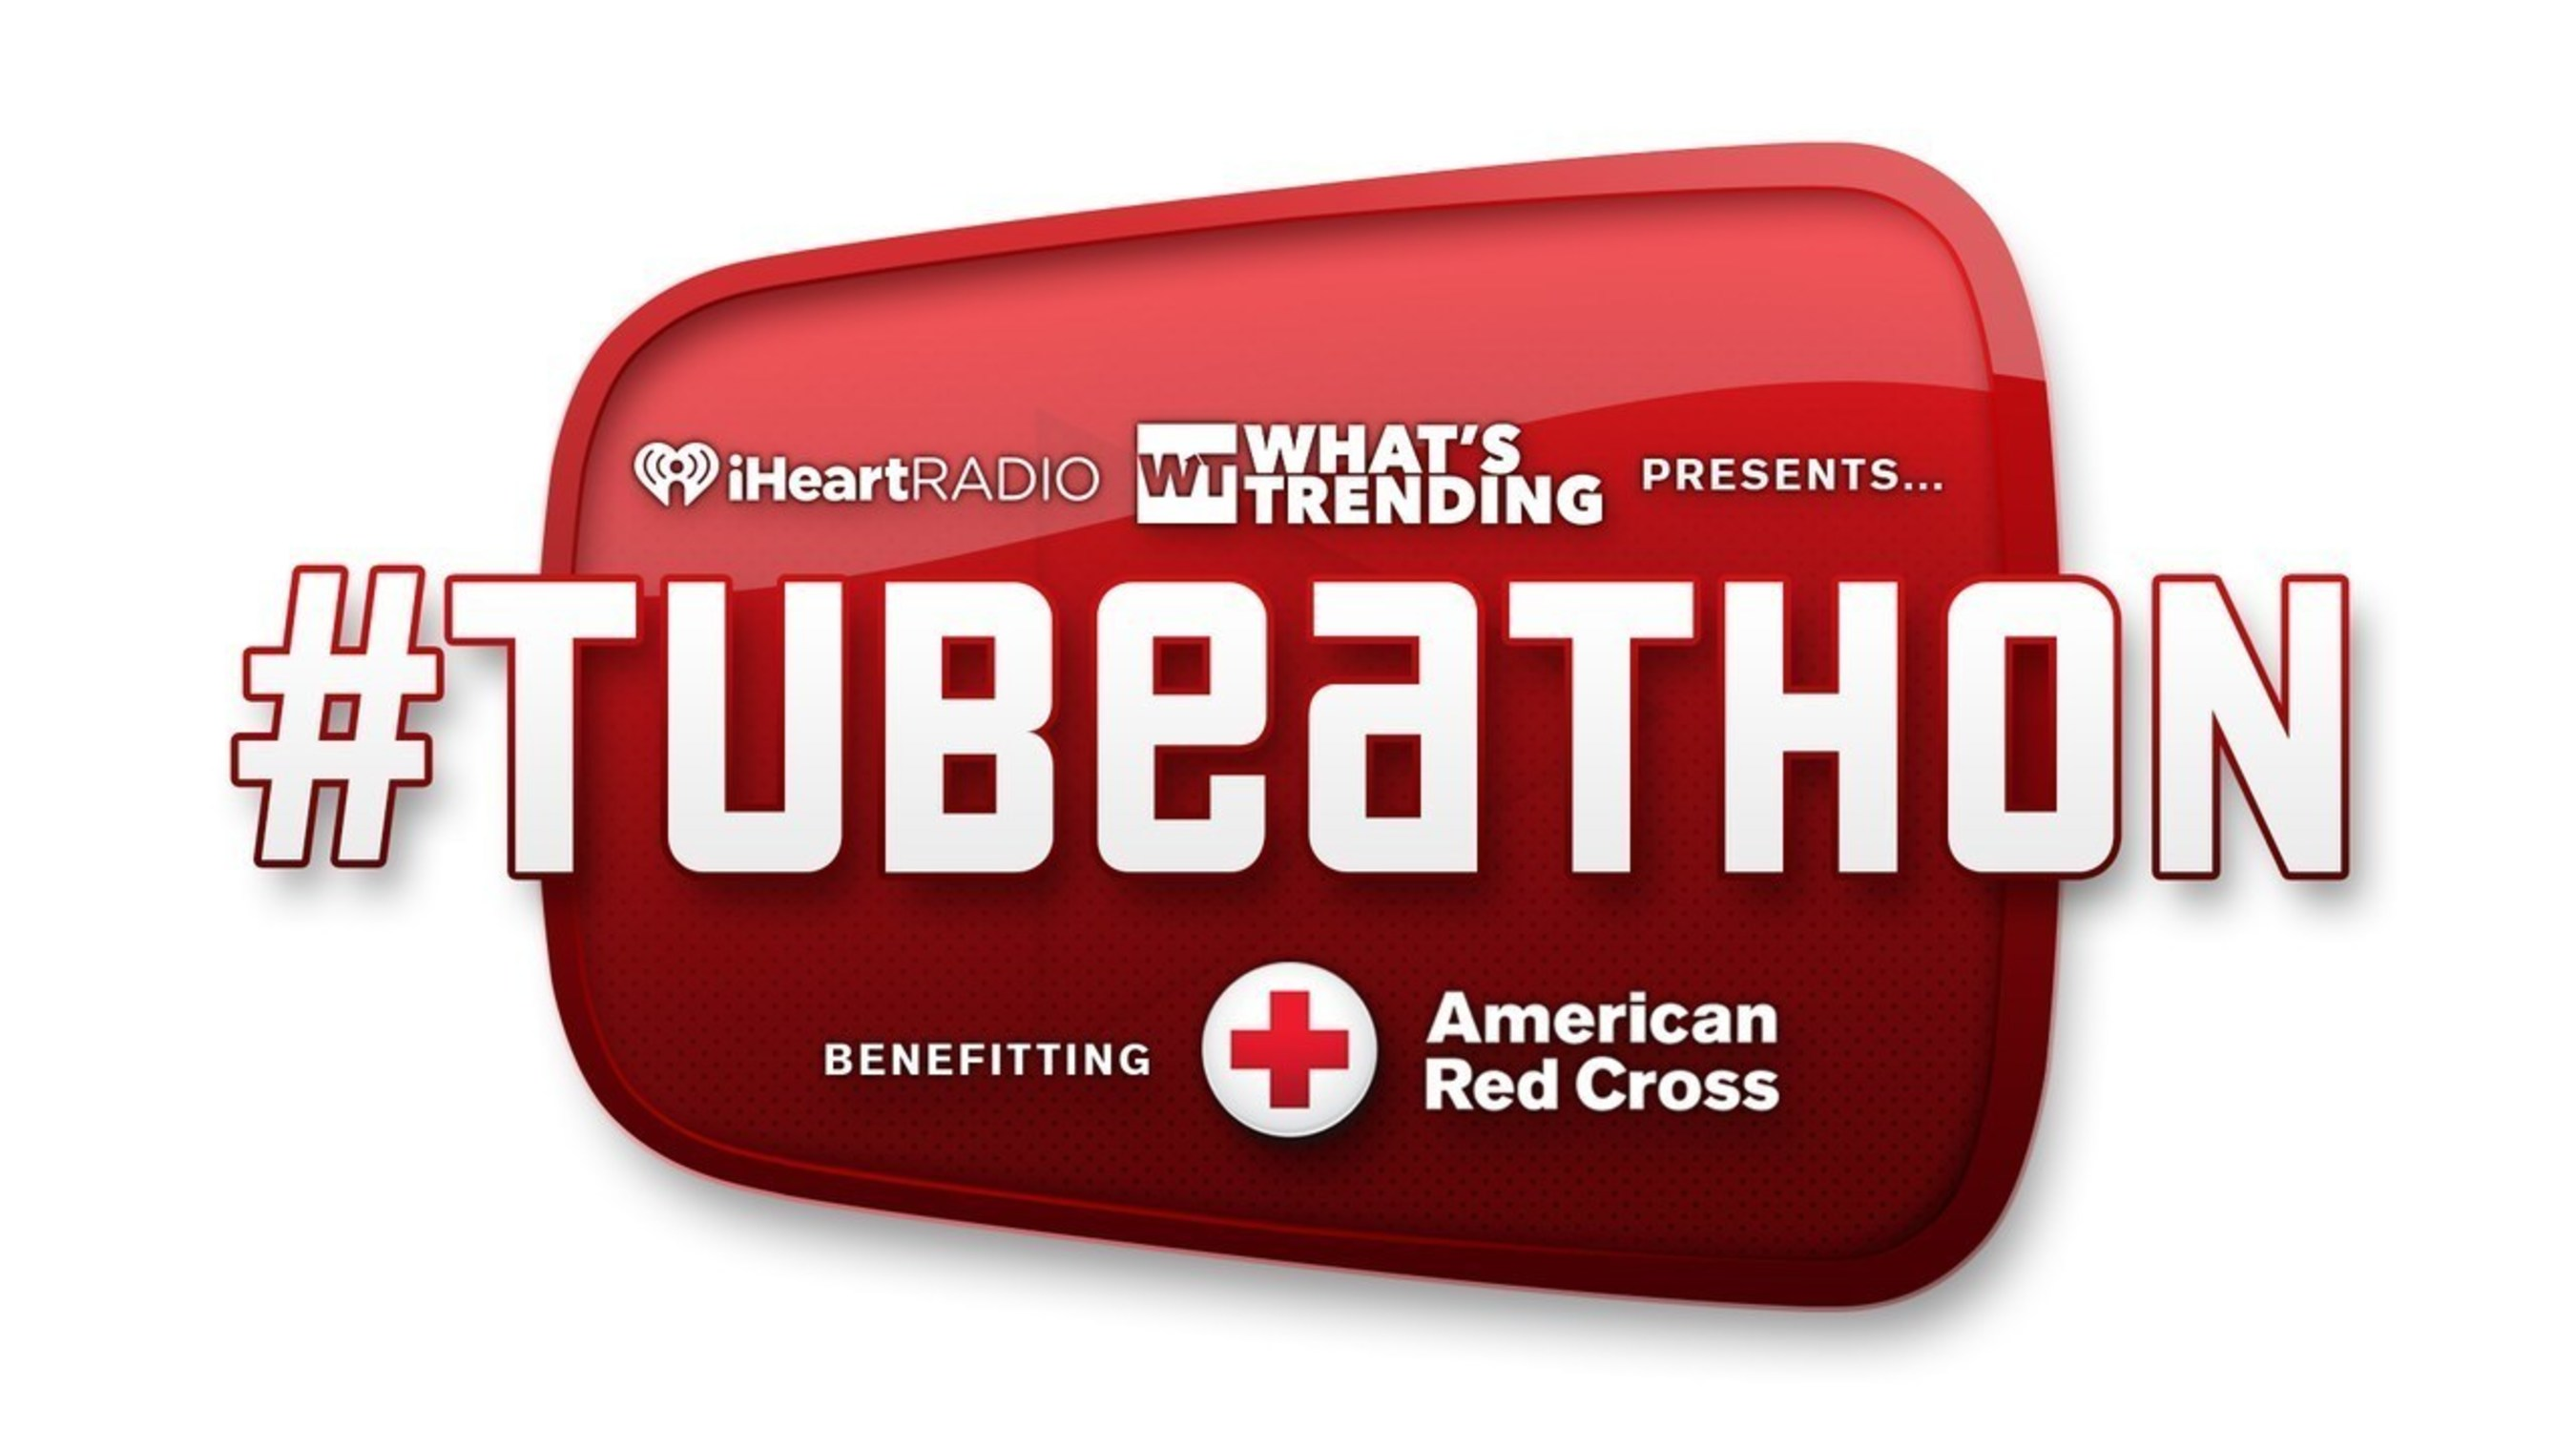 What's Trending and iHeartRadio Partner For TUBEATHON To Benefit The American Red Cross On Wednesday, April 20th